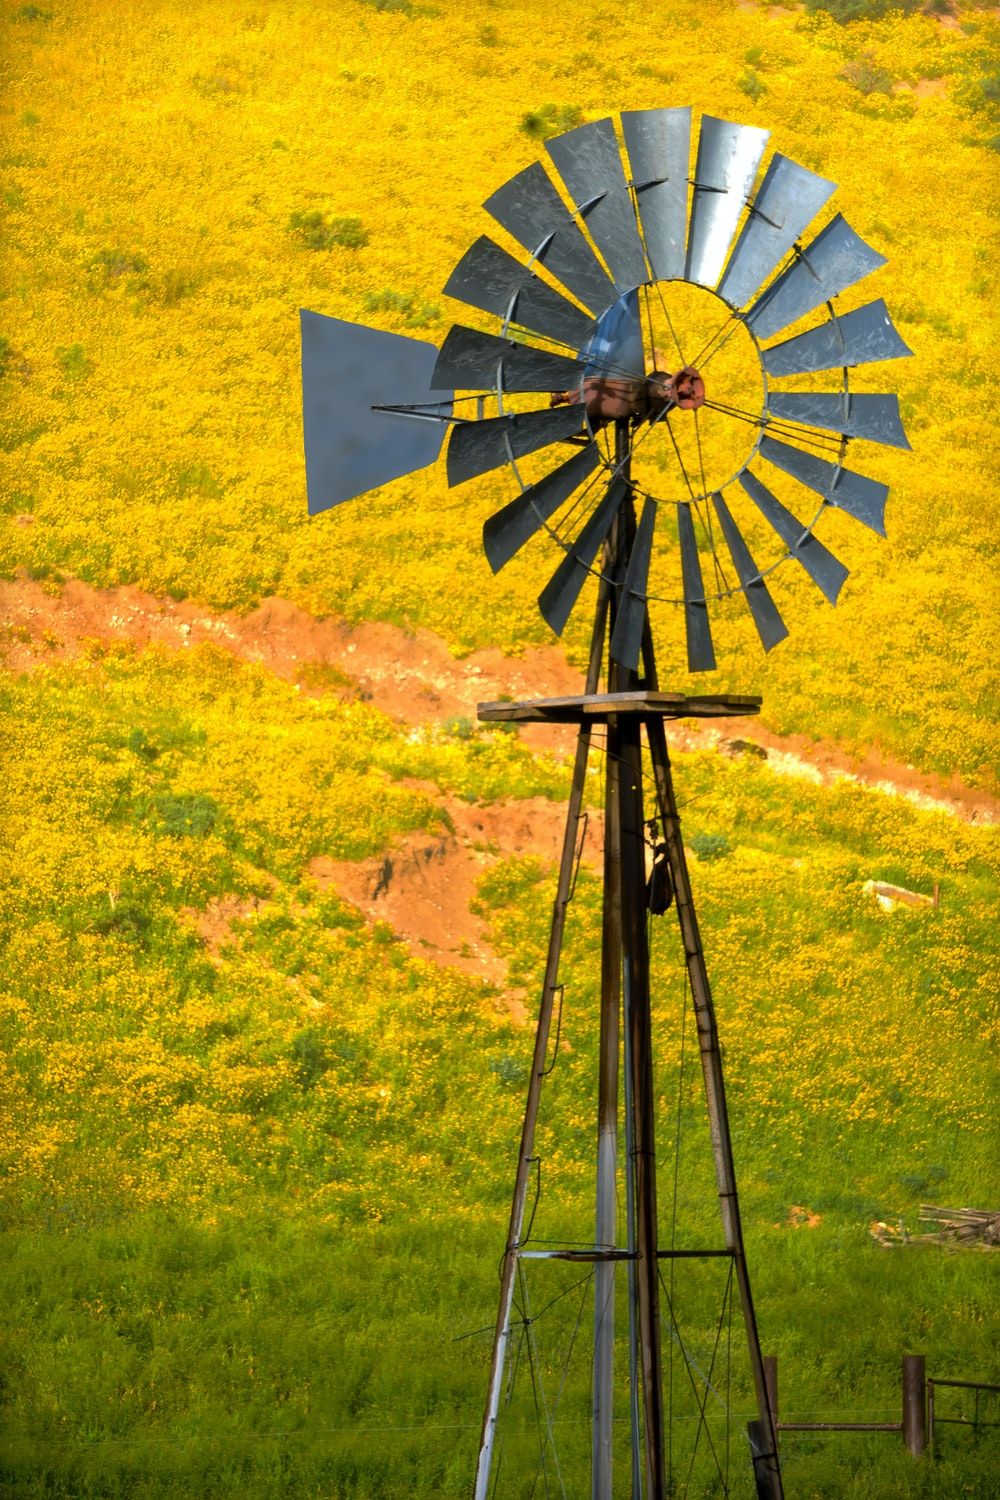 blue and yellow windmill on green grass field during daytime